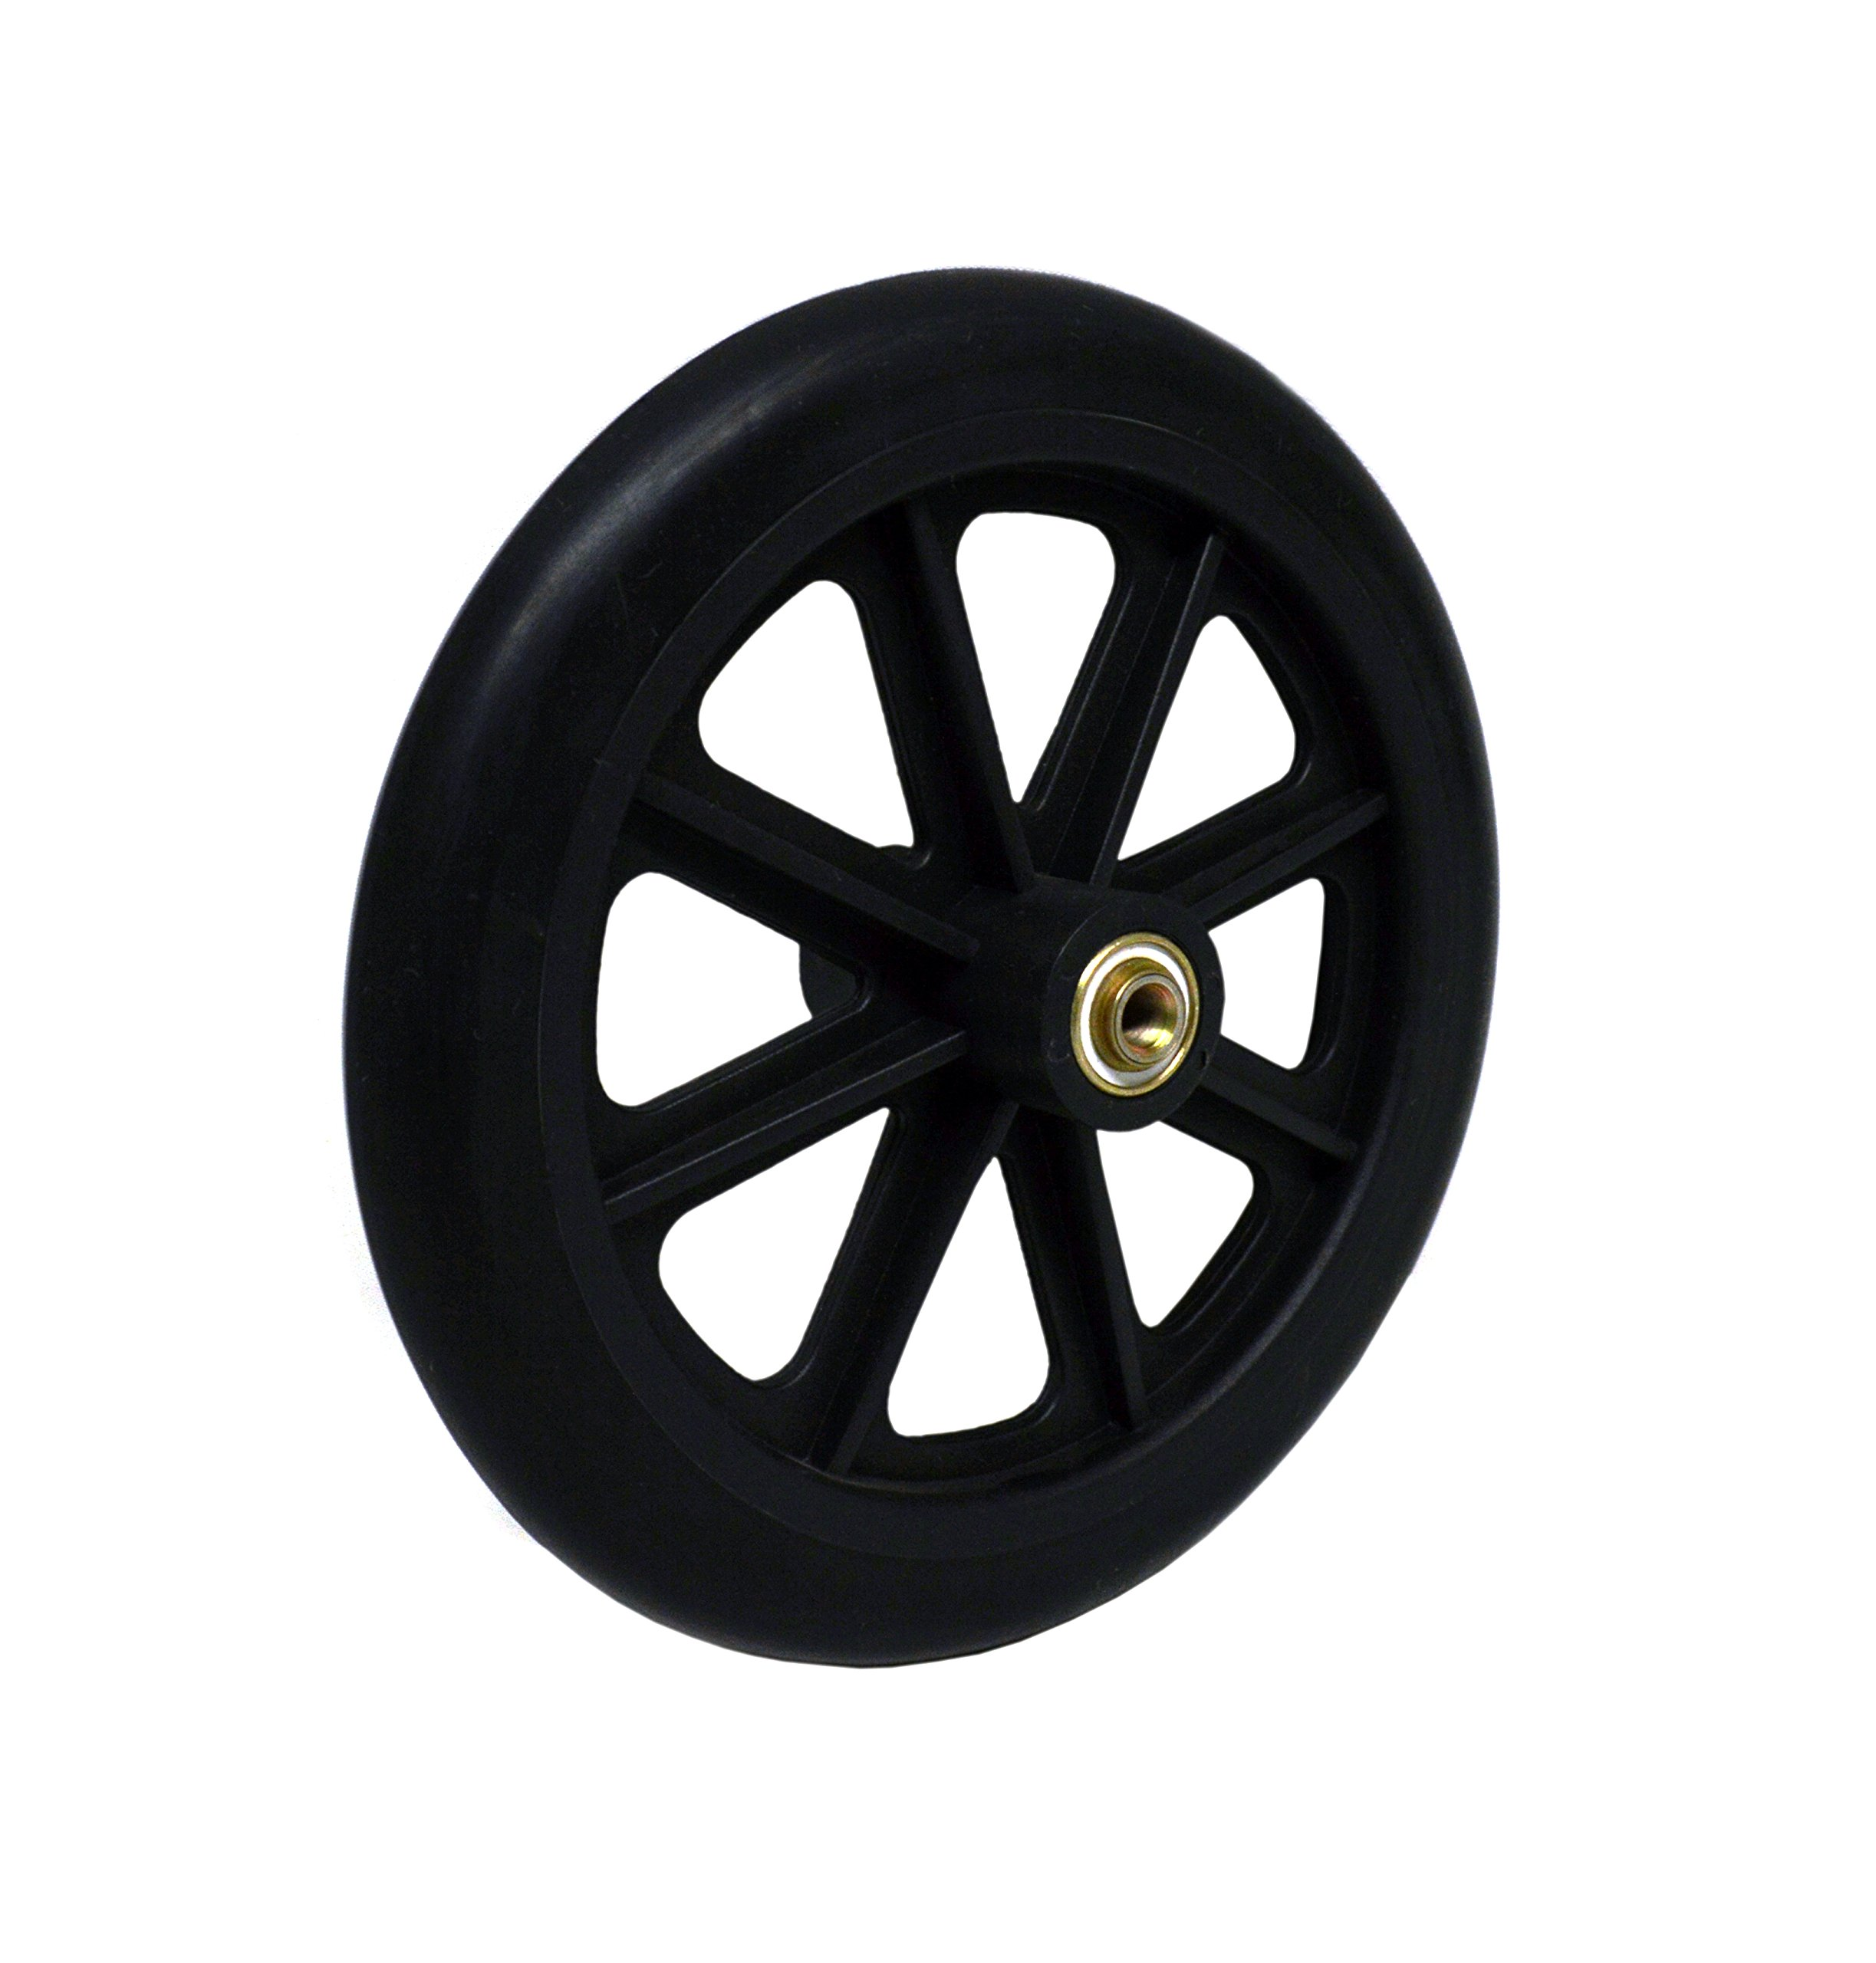 8'' x 1'' Front Wheelchair Wheel (Each), 5/16'' (8 mm) Bearing, 2-3/8'' (60 mm) Hub Width, Fits Most Medline, Drive, Invacare, E&J, Guardian, Tuffcare, ALCO & Other Manual Wheelchairs